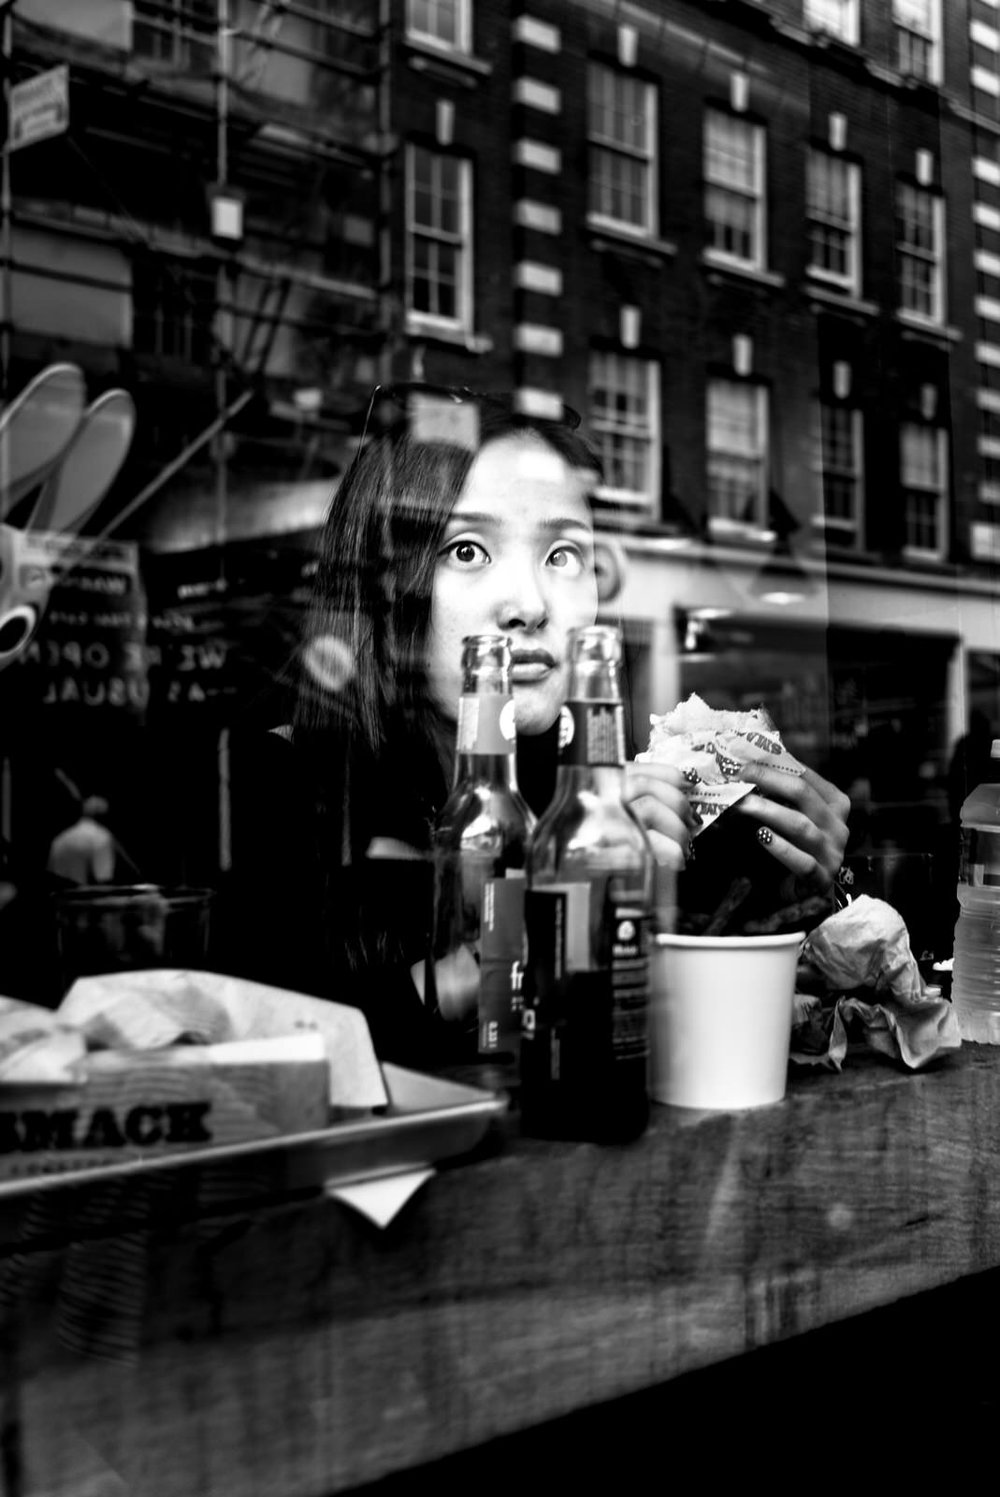 Alan Schaller - Street Photography International 18.jpg